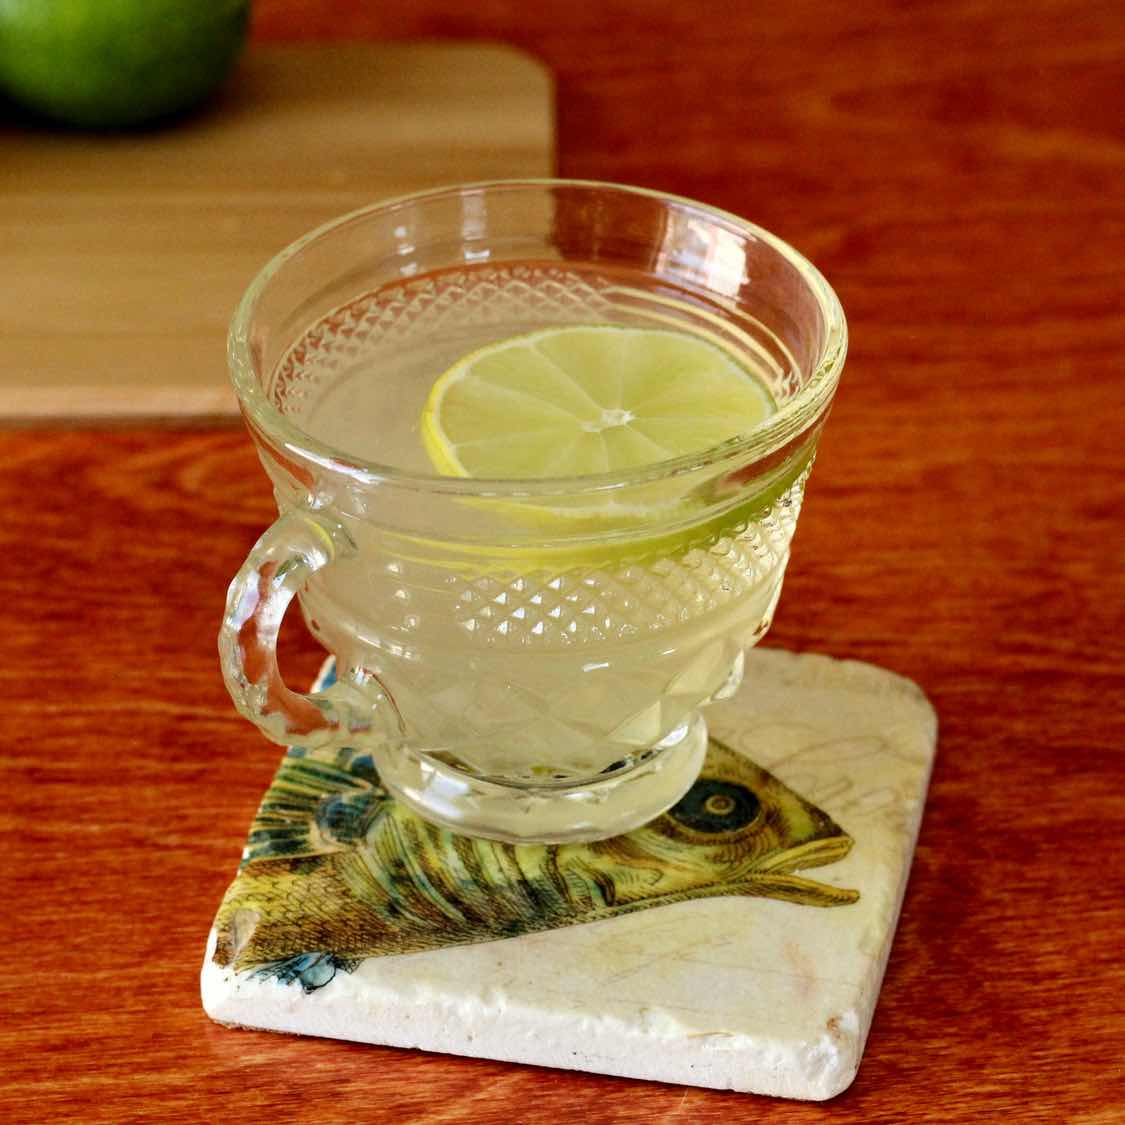 Philadelphia Fish House Punch - Classic Early colonial Cocktail